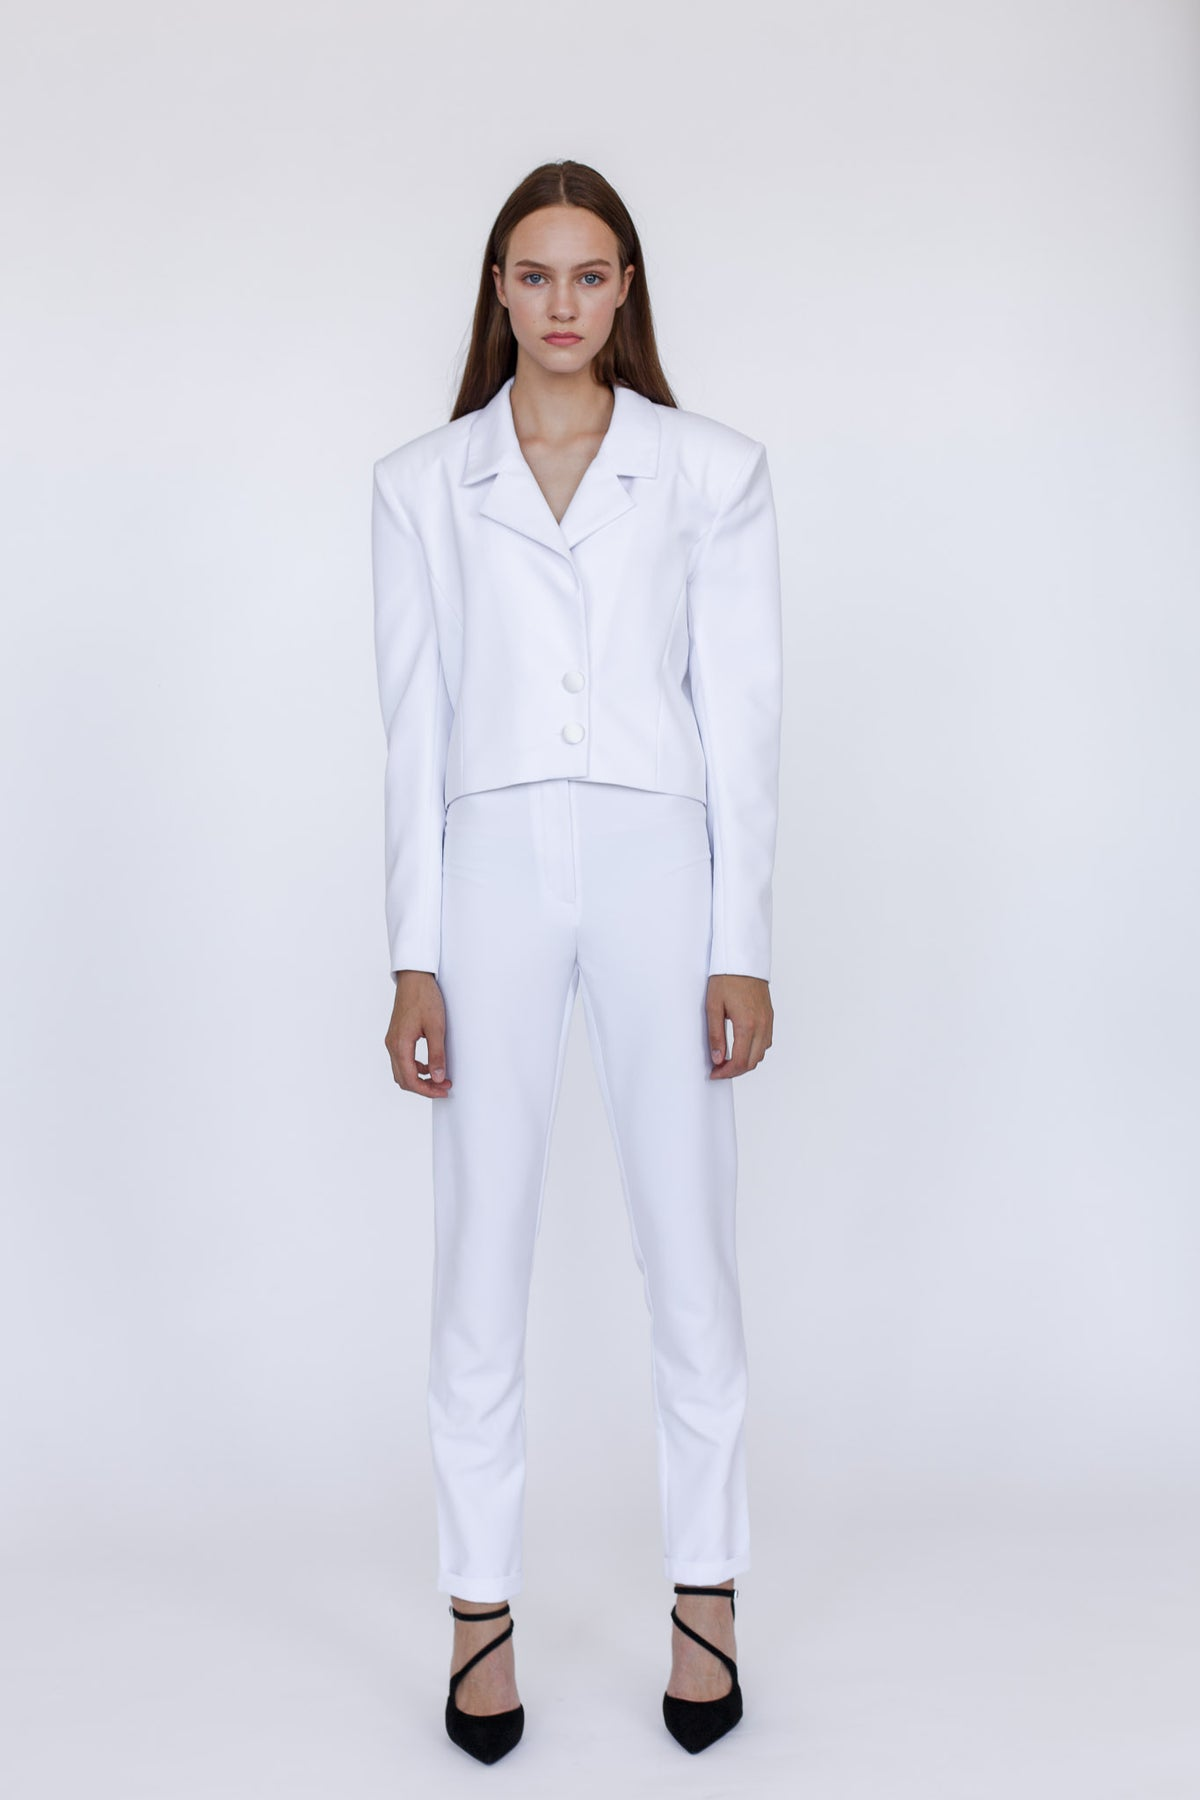 Empowered-White-Cut-Fit-Tailoring-Jacket-With-Big-Shoulders-Jackets-Clothing-le-slap.jpg